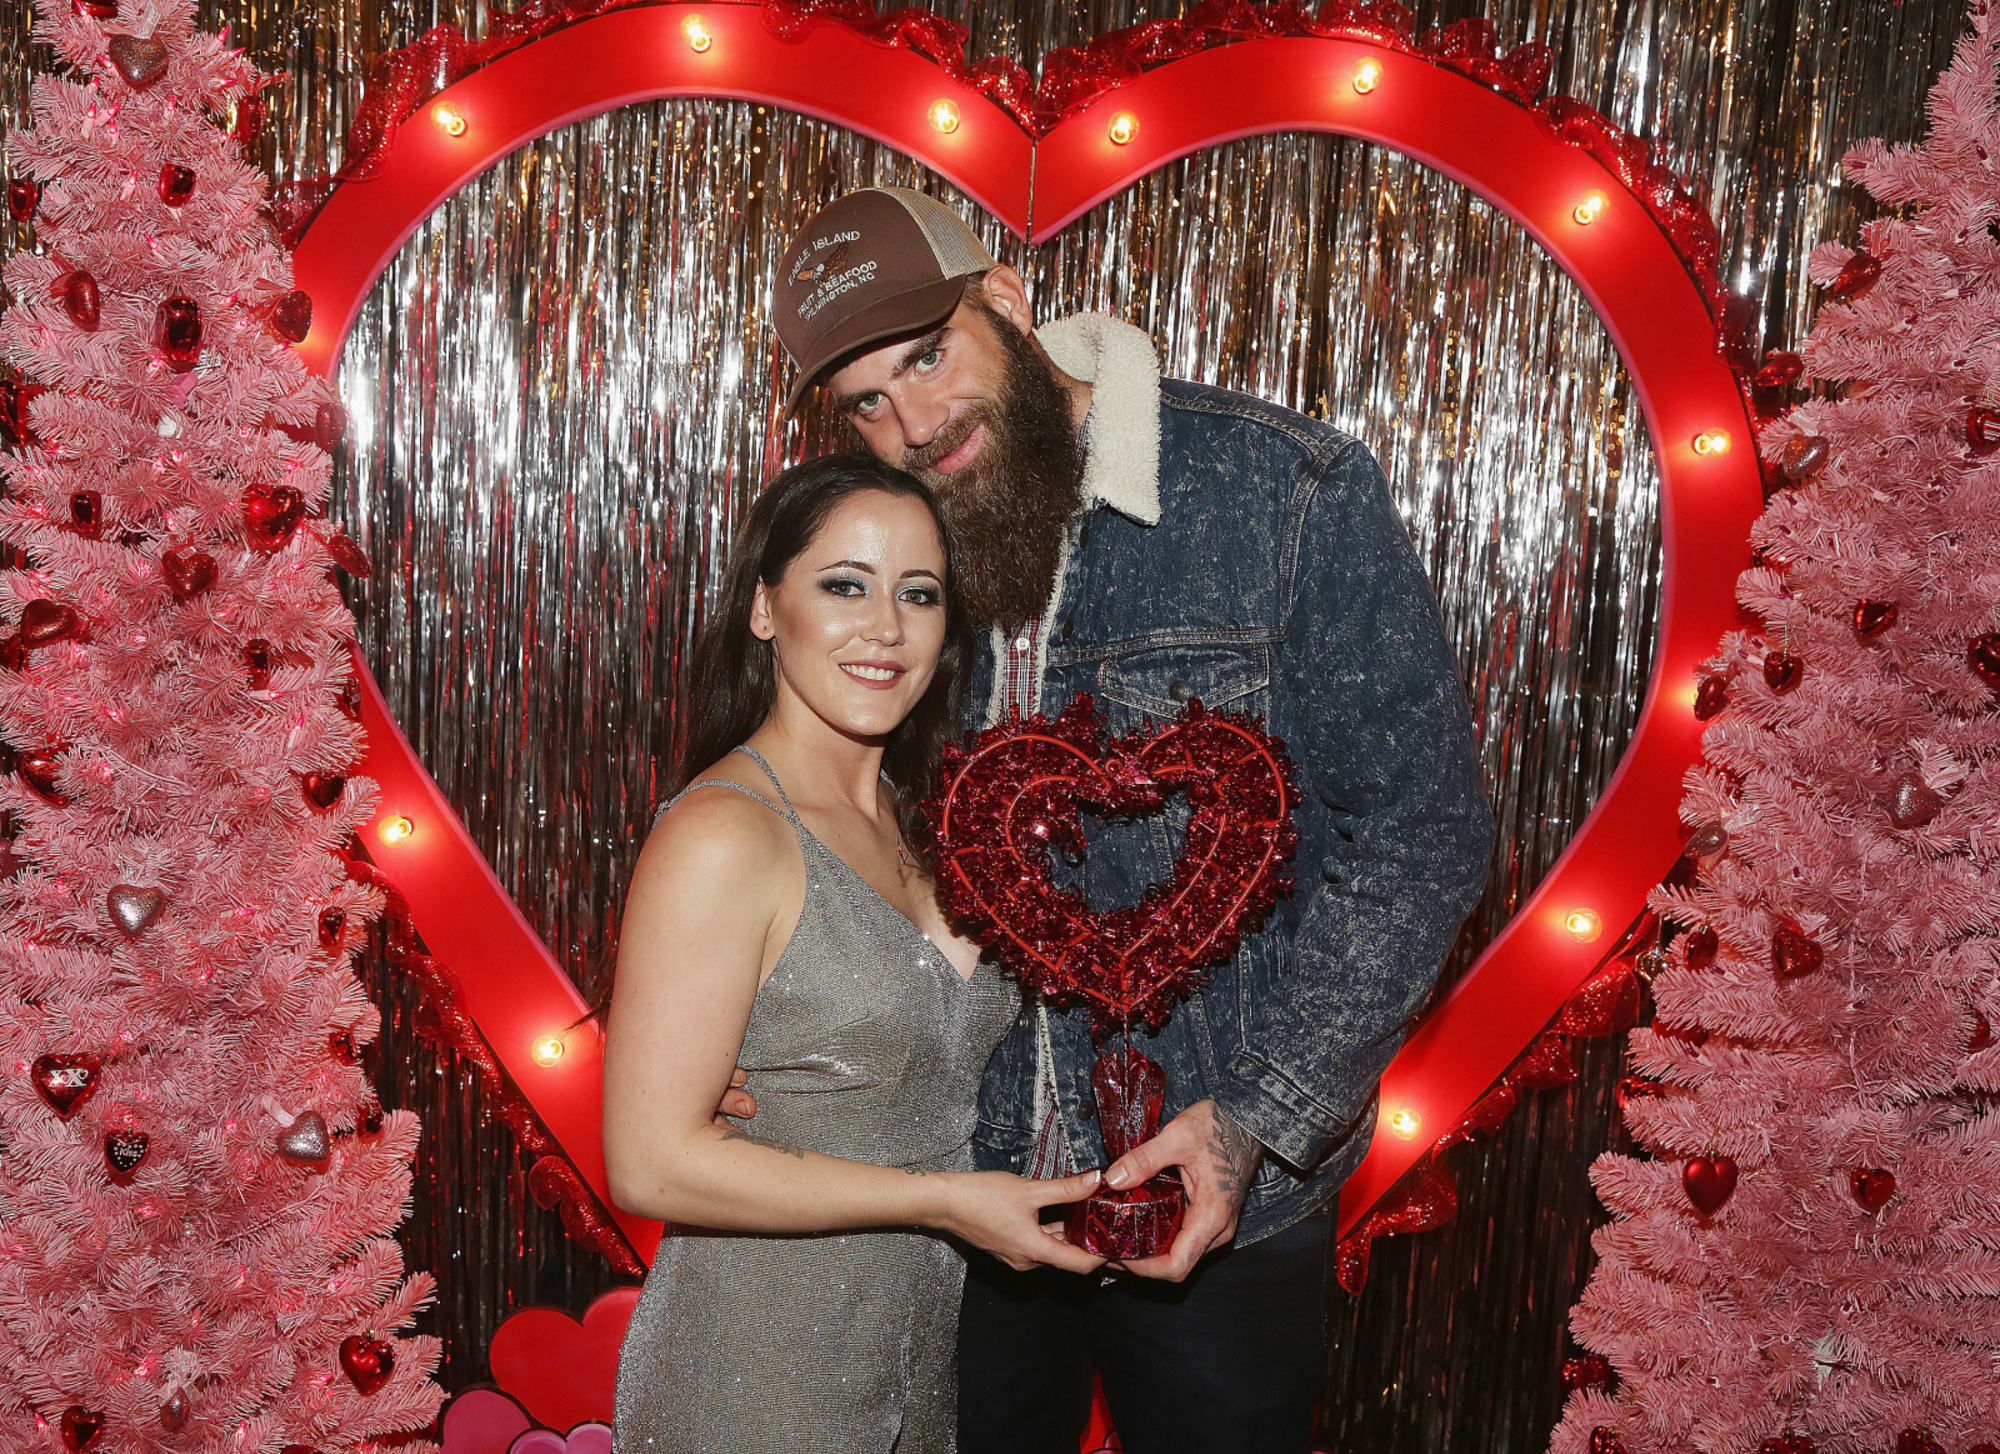 Jenelle Evans defends David Eason relationship as they celebrate 3-year anniversary